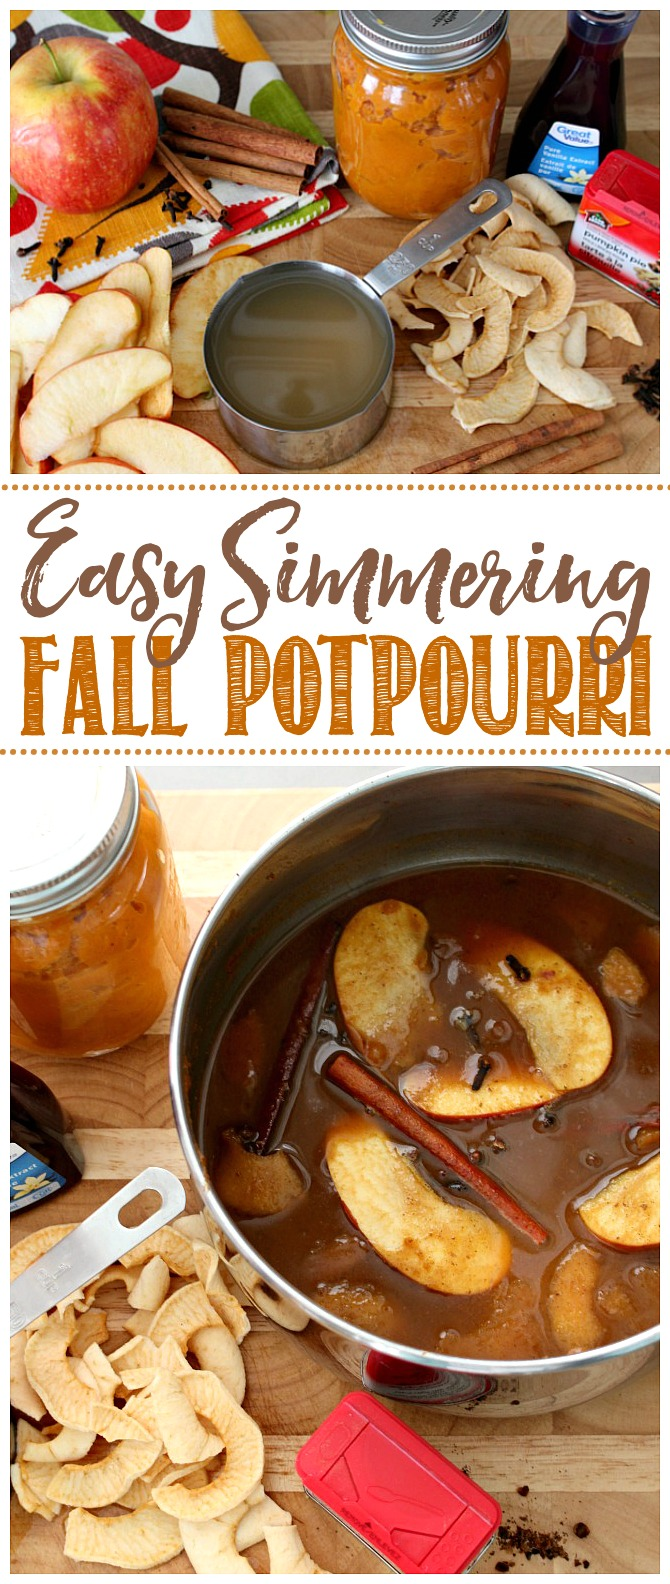 Fall potpourri made with pumpkin, apples, and delicious fall spices.